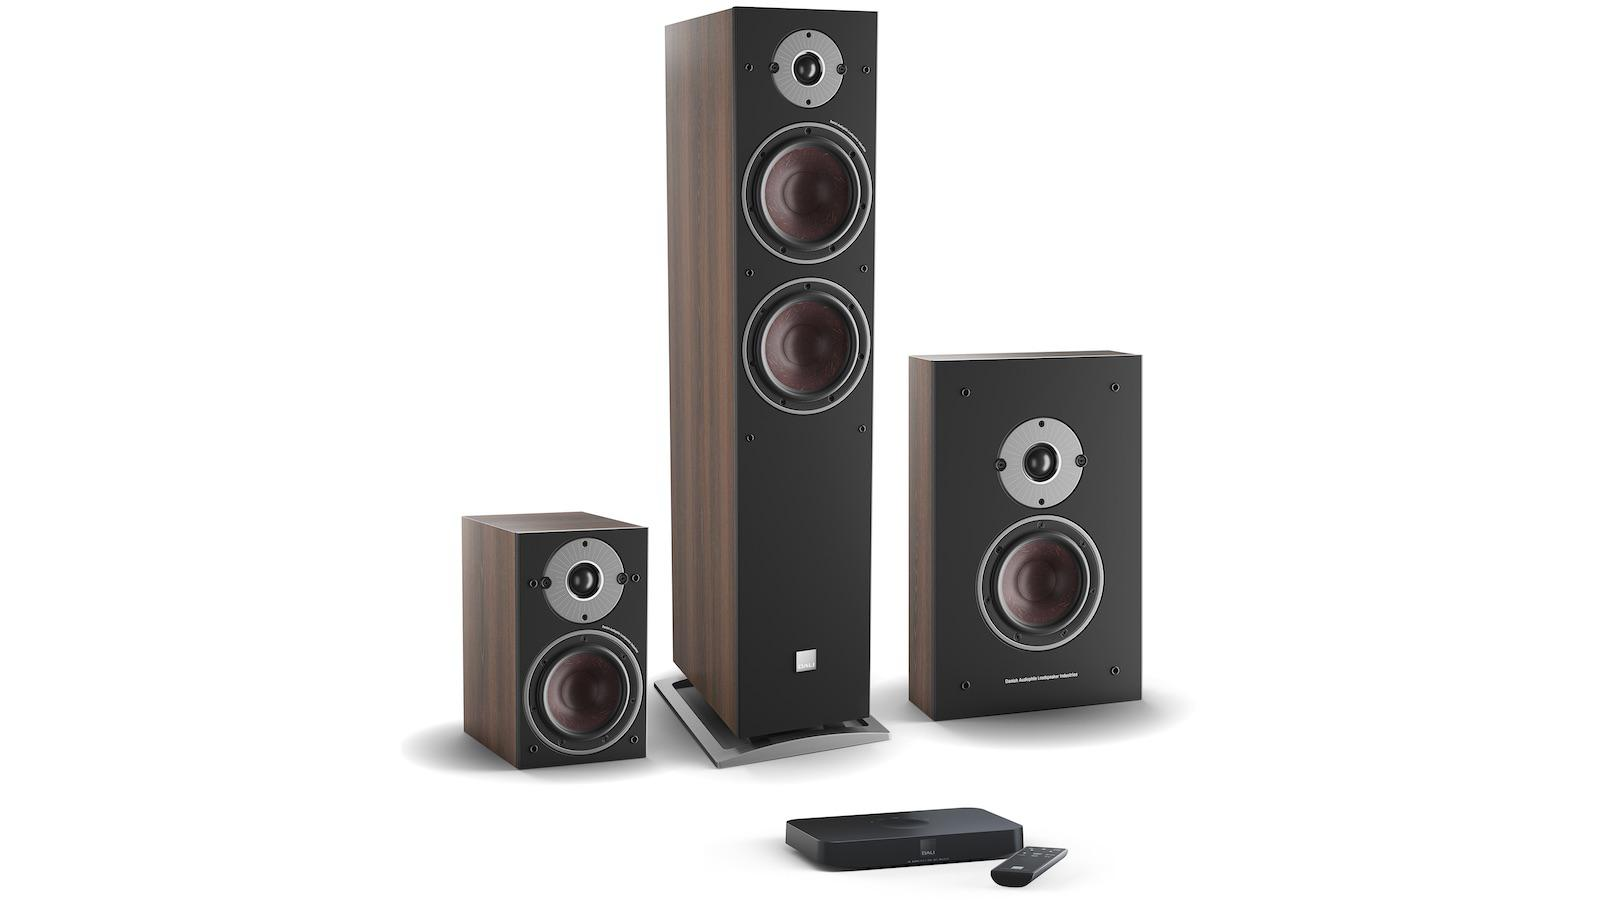 DALI OBERON C Active Speakers and Wireless Transmitter Group